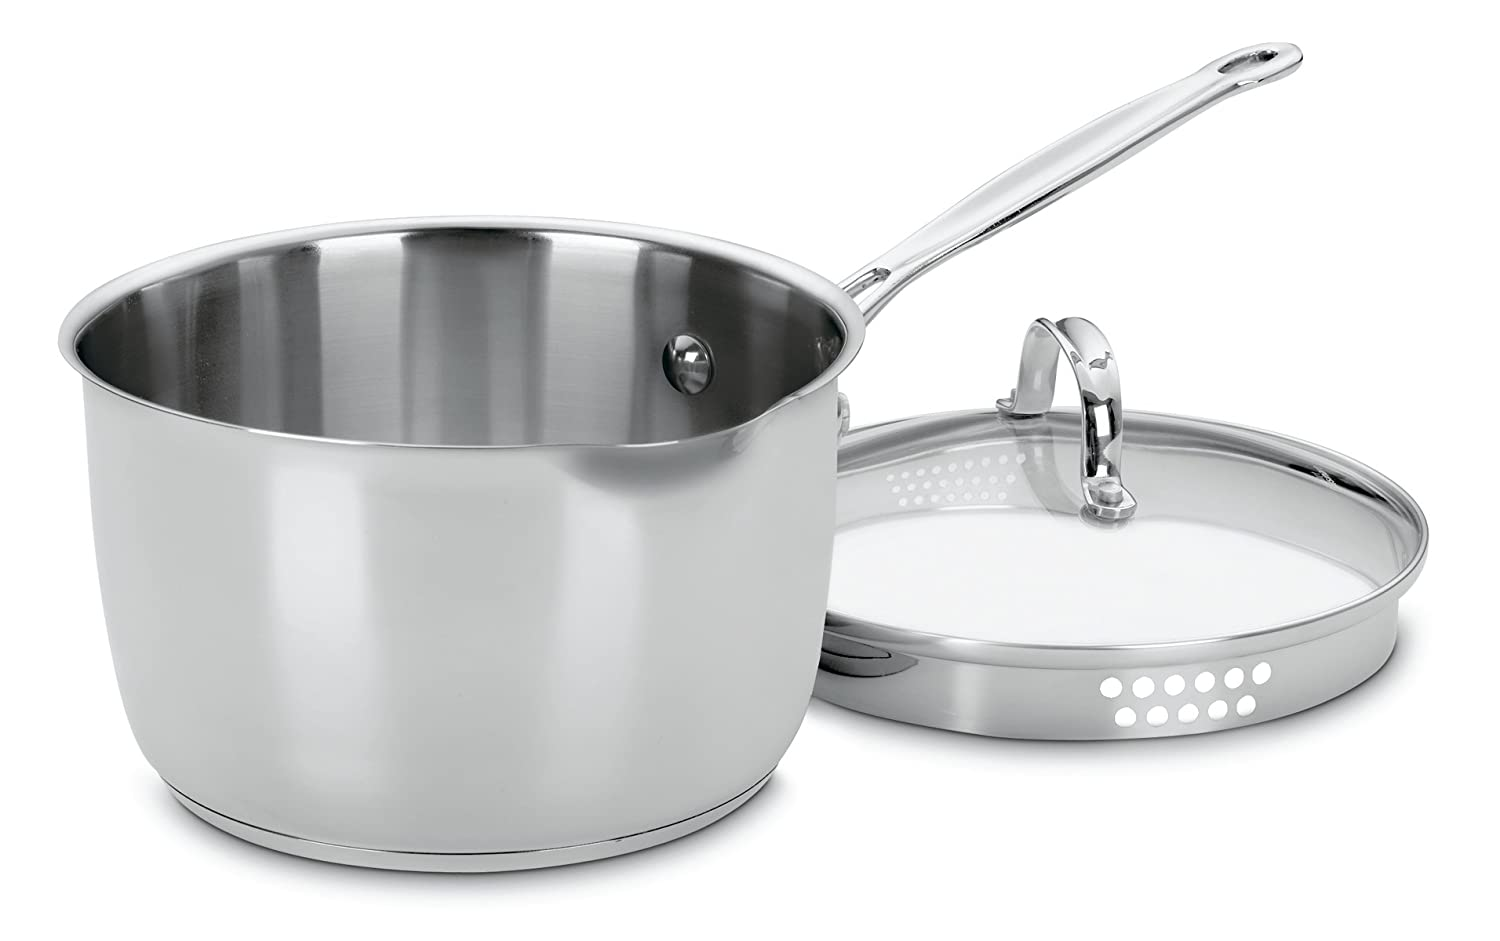 Chef's Classic Stainless 3-Quart Cook and Pour Saucepan